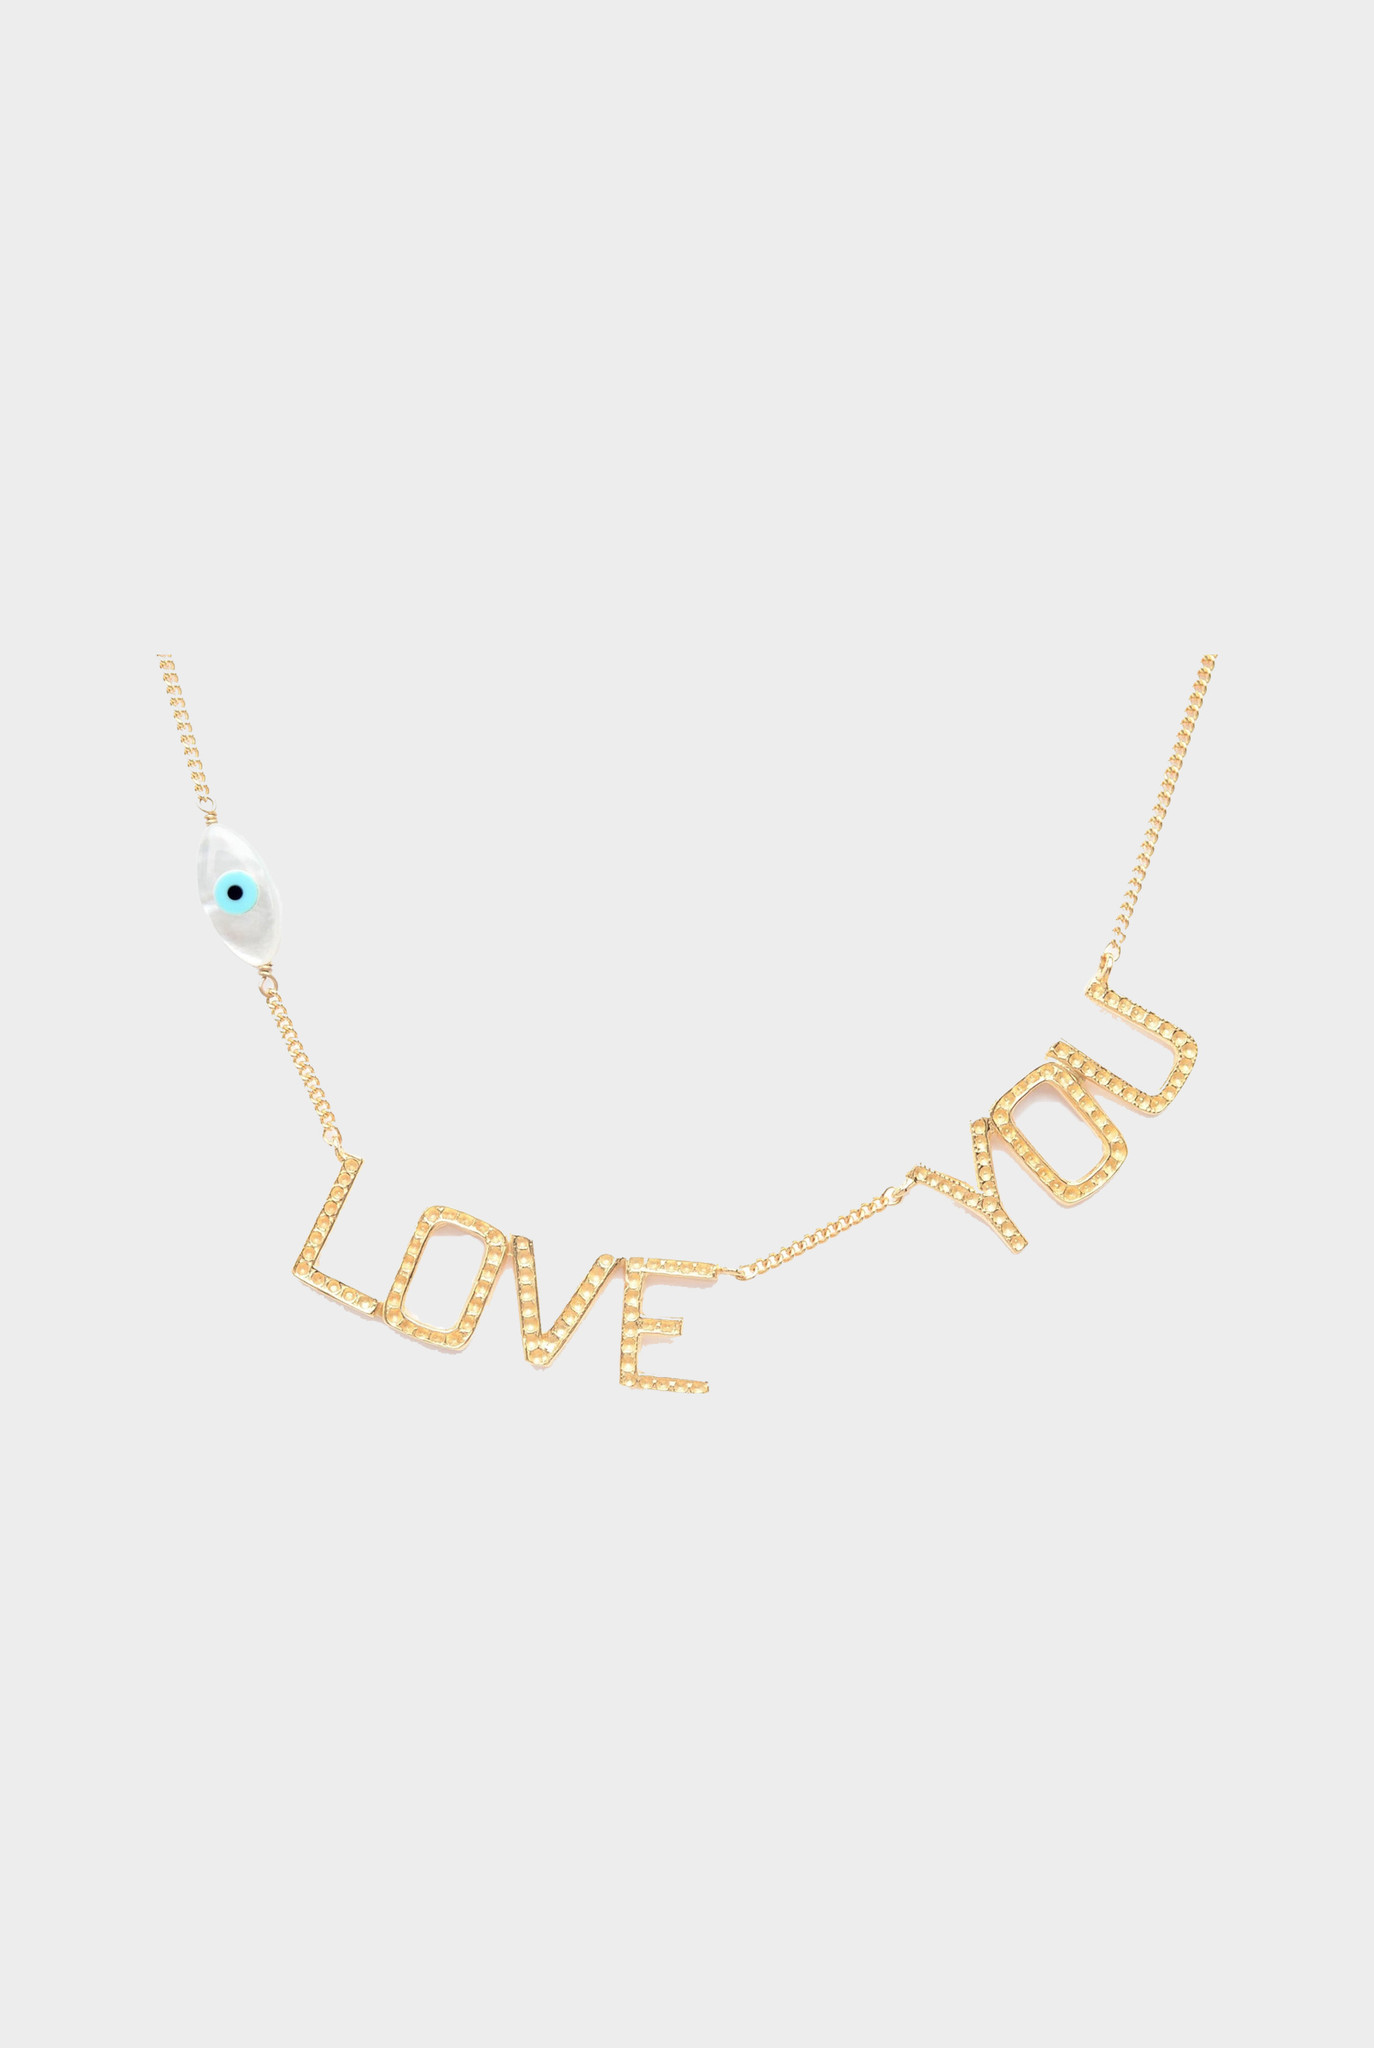 Eye Love You necklace with mother of pearl gold plated